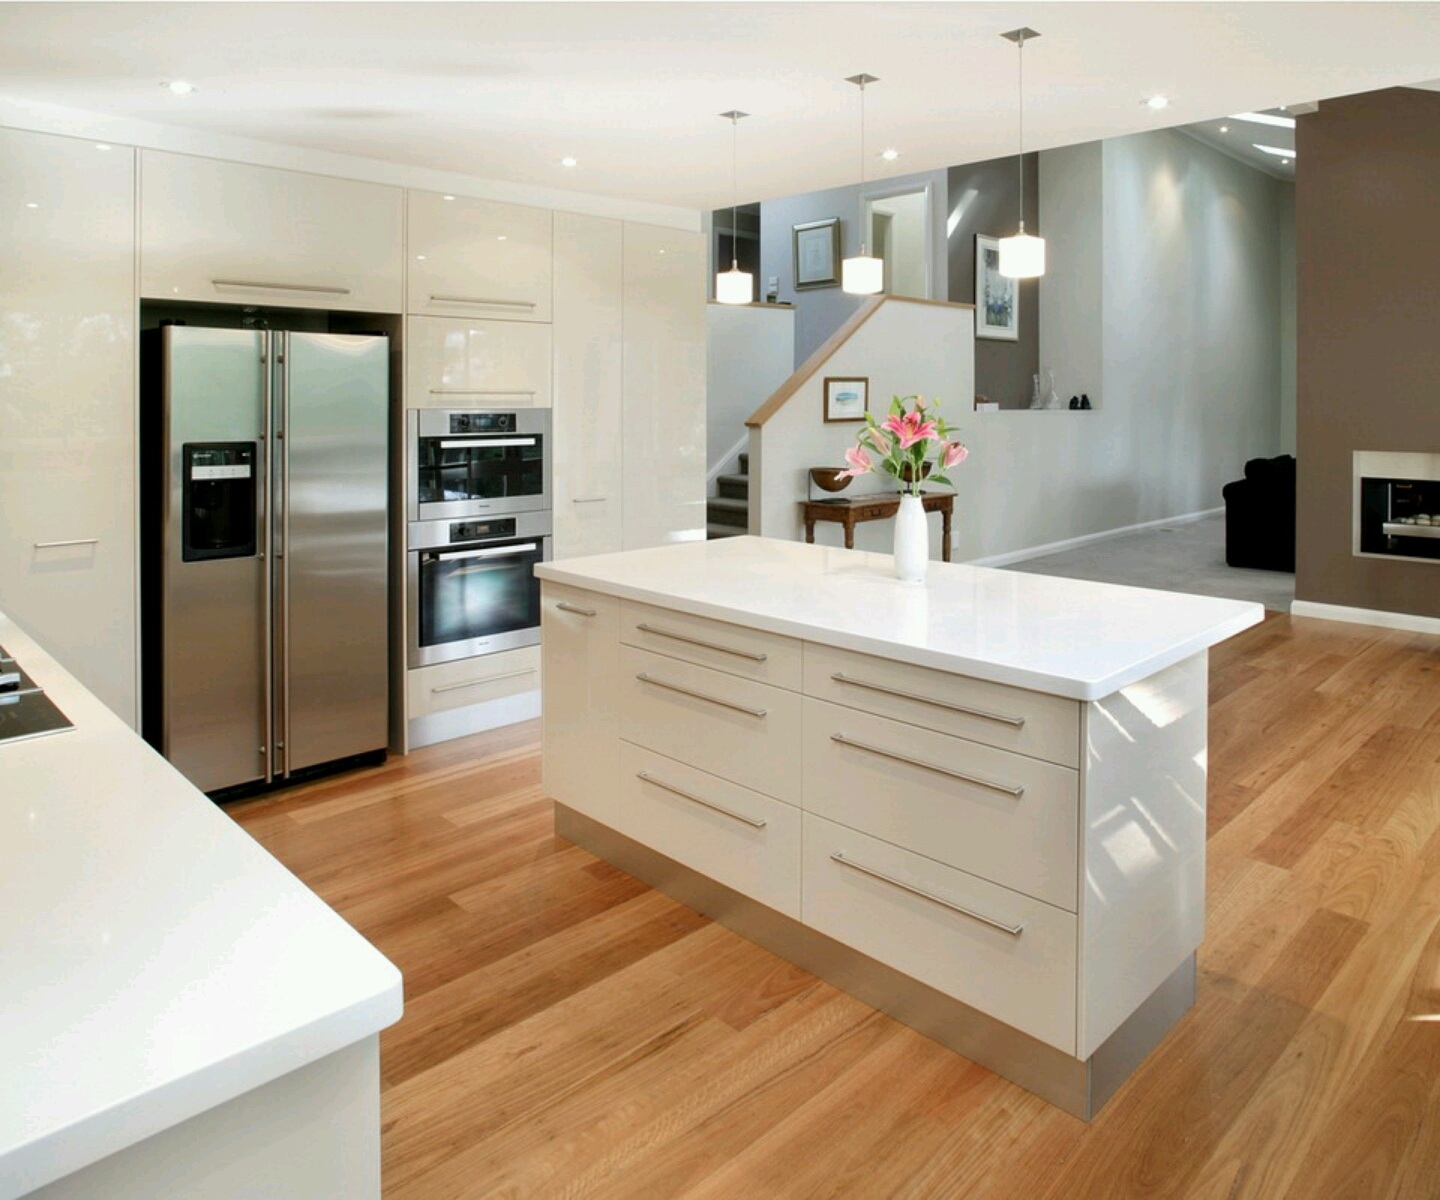 Luxury kitchen modern kitchen cabinets designs furniture gallery - Kitchen door designs ...